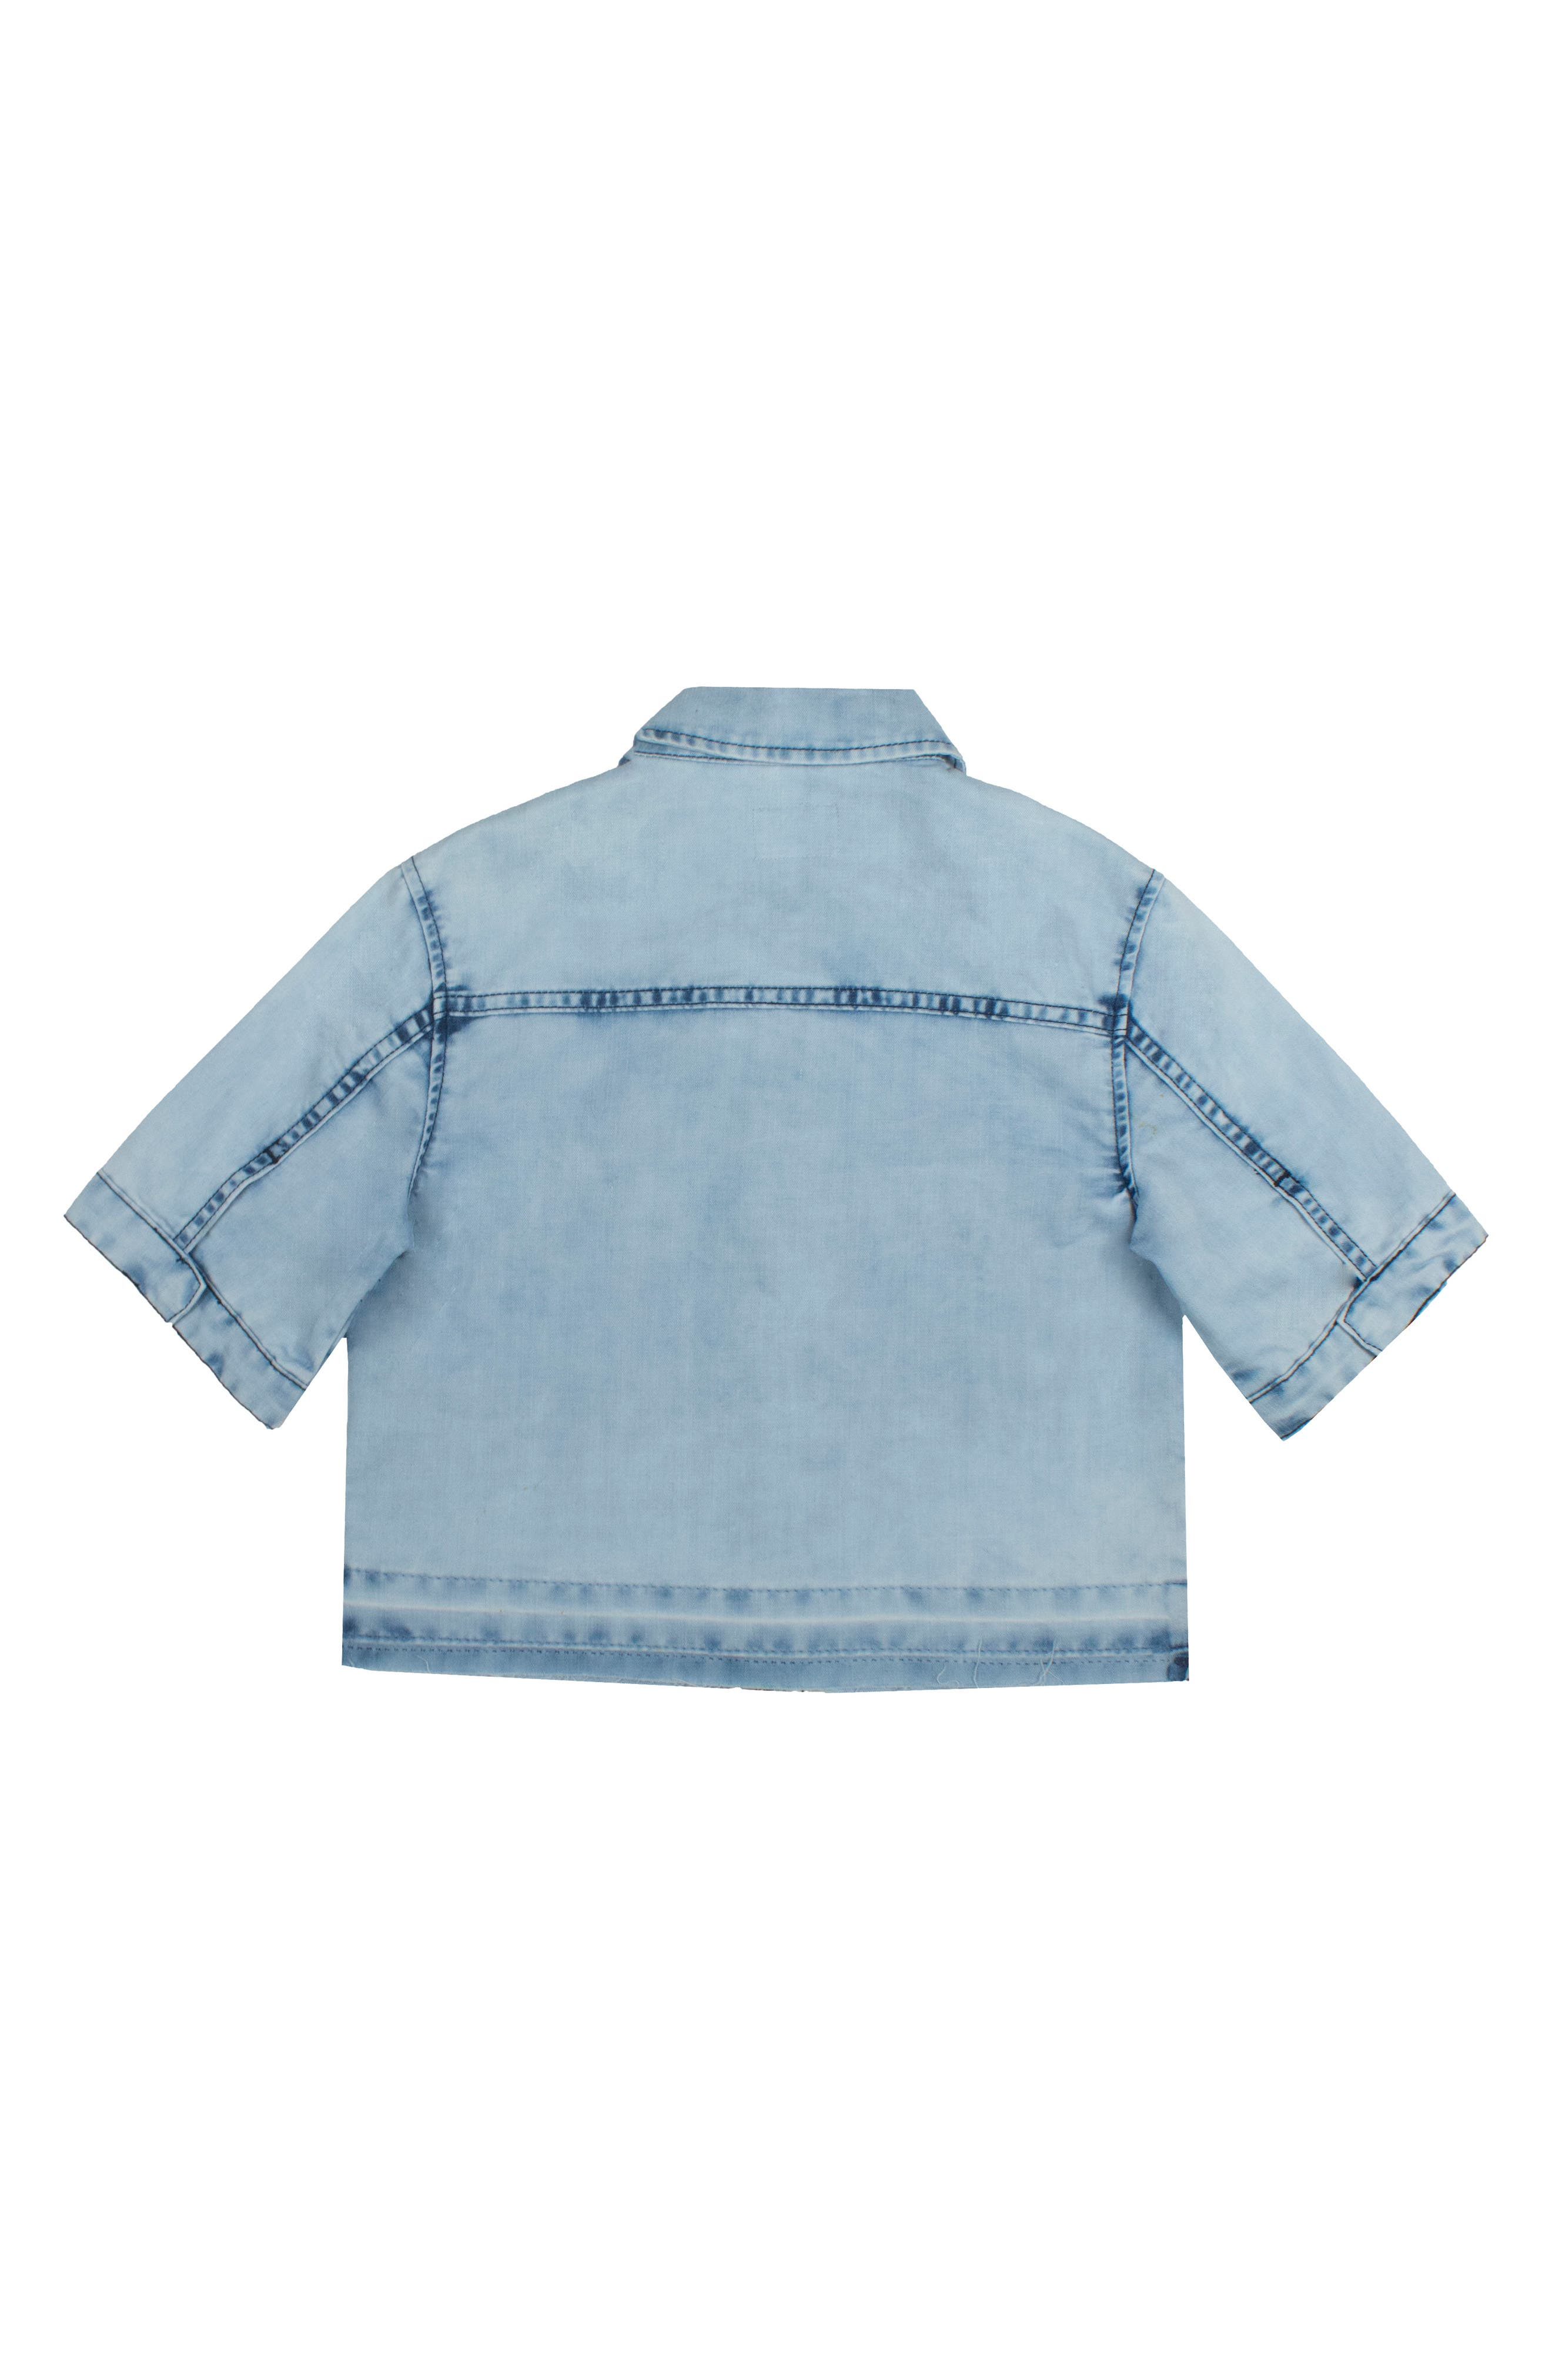 Addie Chambray Shirt,                             Alternate thumbnail 2, color,                             Crinkle Blue